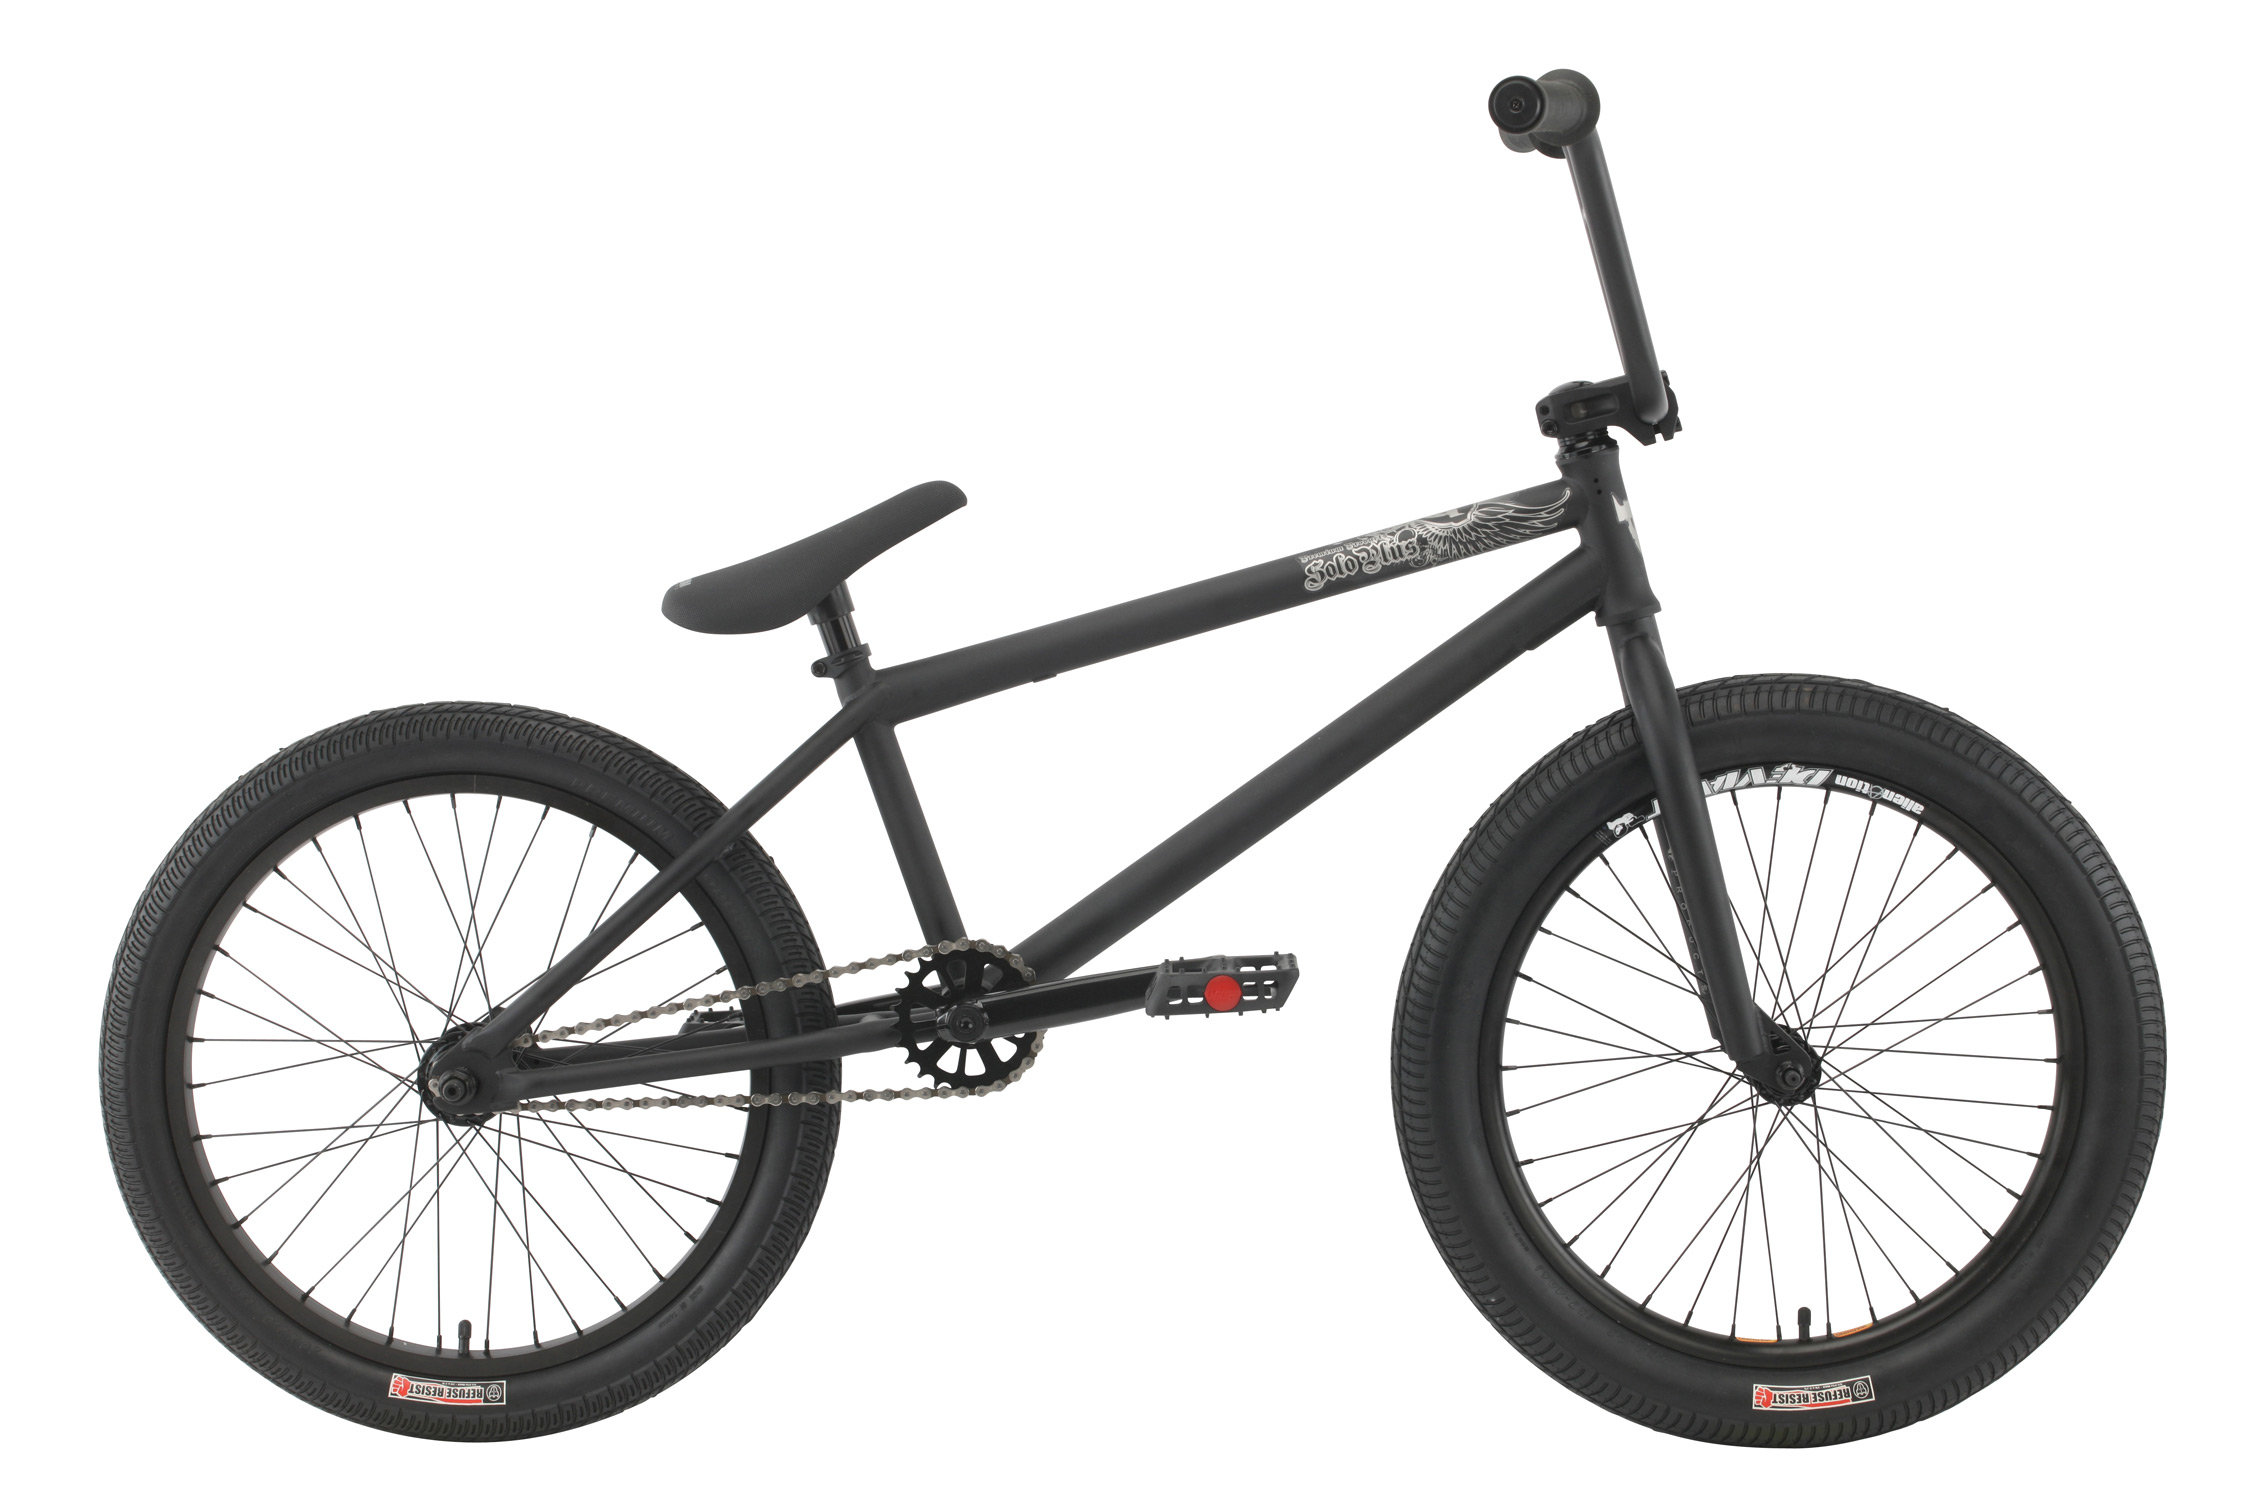 "BMX Key Features of the Premium Solo Plus BMX Bike: Premium frame with a chromoly down tube, Mid BB shell, internal head tube Odyssey Twisted plastic pedals 8"" rise bar (on 20.5"") or 8.25"" (on 21"") with alloy front load stem Three-piece 175mm chromoly 8-spline cranks with sealed Mid BB 25/9 gearing Alloy sealed bearing cassette hub with 9T driver and 14mm axle Premium Street tires; 2.25"" front, 2.0"" rear Premium Slim padded seat w/ built-in alloy post WEIGHT 25.25lbs FRAME Crmo down tube w/removable brake mounts - 20.5"" or 21"" TT FORK 1 1/8"" Crmo Threadless steer tube - w/Hi-ten tapered legs CRANKS 3 pc. tubular Crmo 175mm w/sealed MID BB PEDALS Odyssey plastic pedals TIRES Premium Street Tires, 20x2.25 F / 20x2.0 R WHEELS Alienation 36h Deviant dw front/36h Black Sheep dw rear, 36H alloy sealed 3/8"" Frt, 36H Alloy sealed cassette rear 14mm w/9T driver ROTOR N/A Straight Cable GRIPS Premium Counterfeit BARS Hi-ten - 8"" rise w/20.5"" frame, 8.25"" rise w/21"" frame SEAT Premium slim padded one piece seat with built in post PEGS N/A - $429.95"